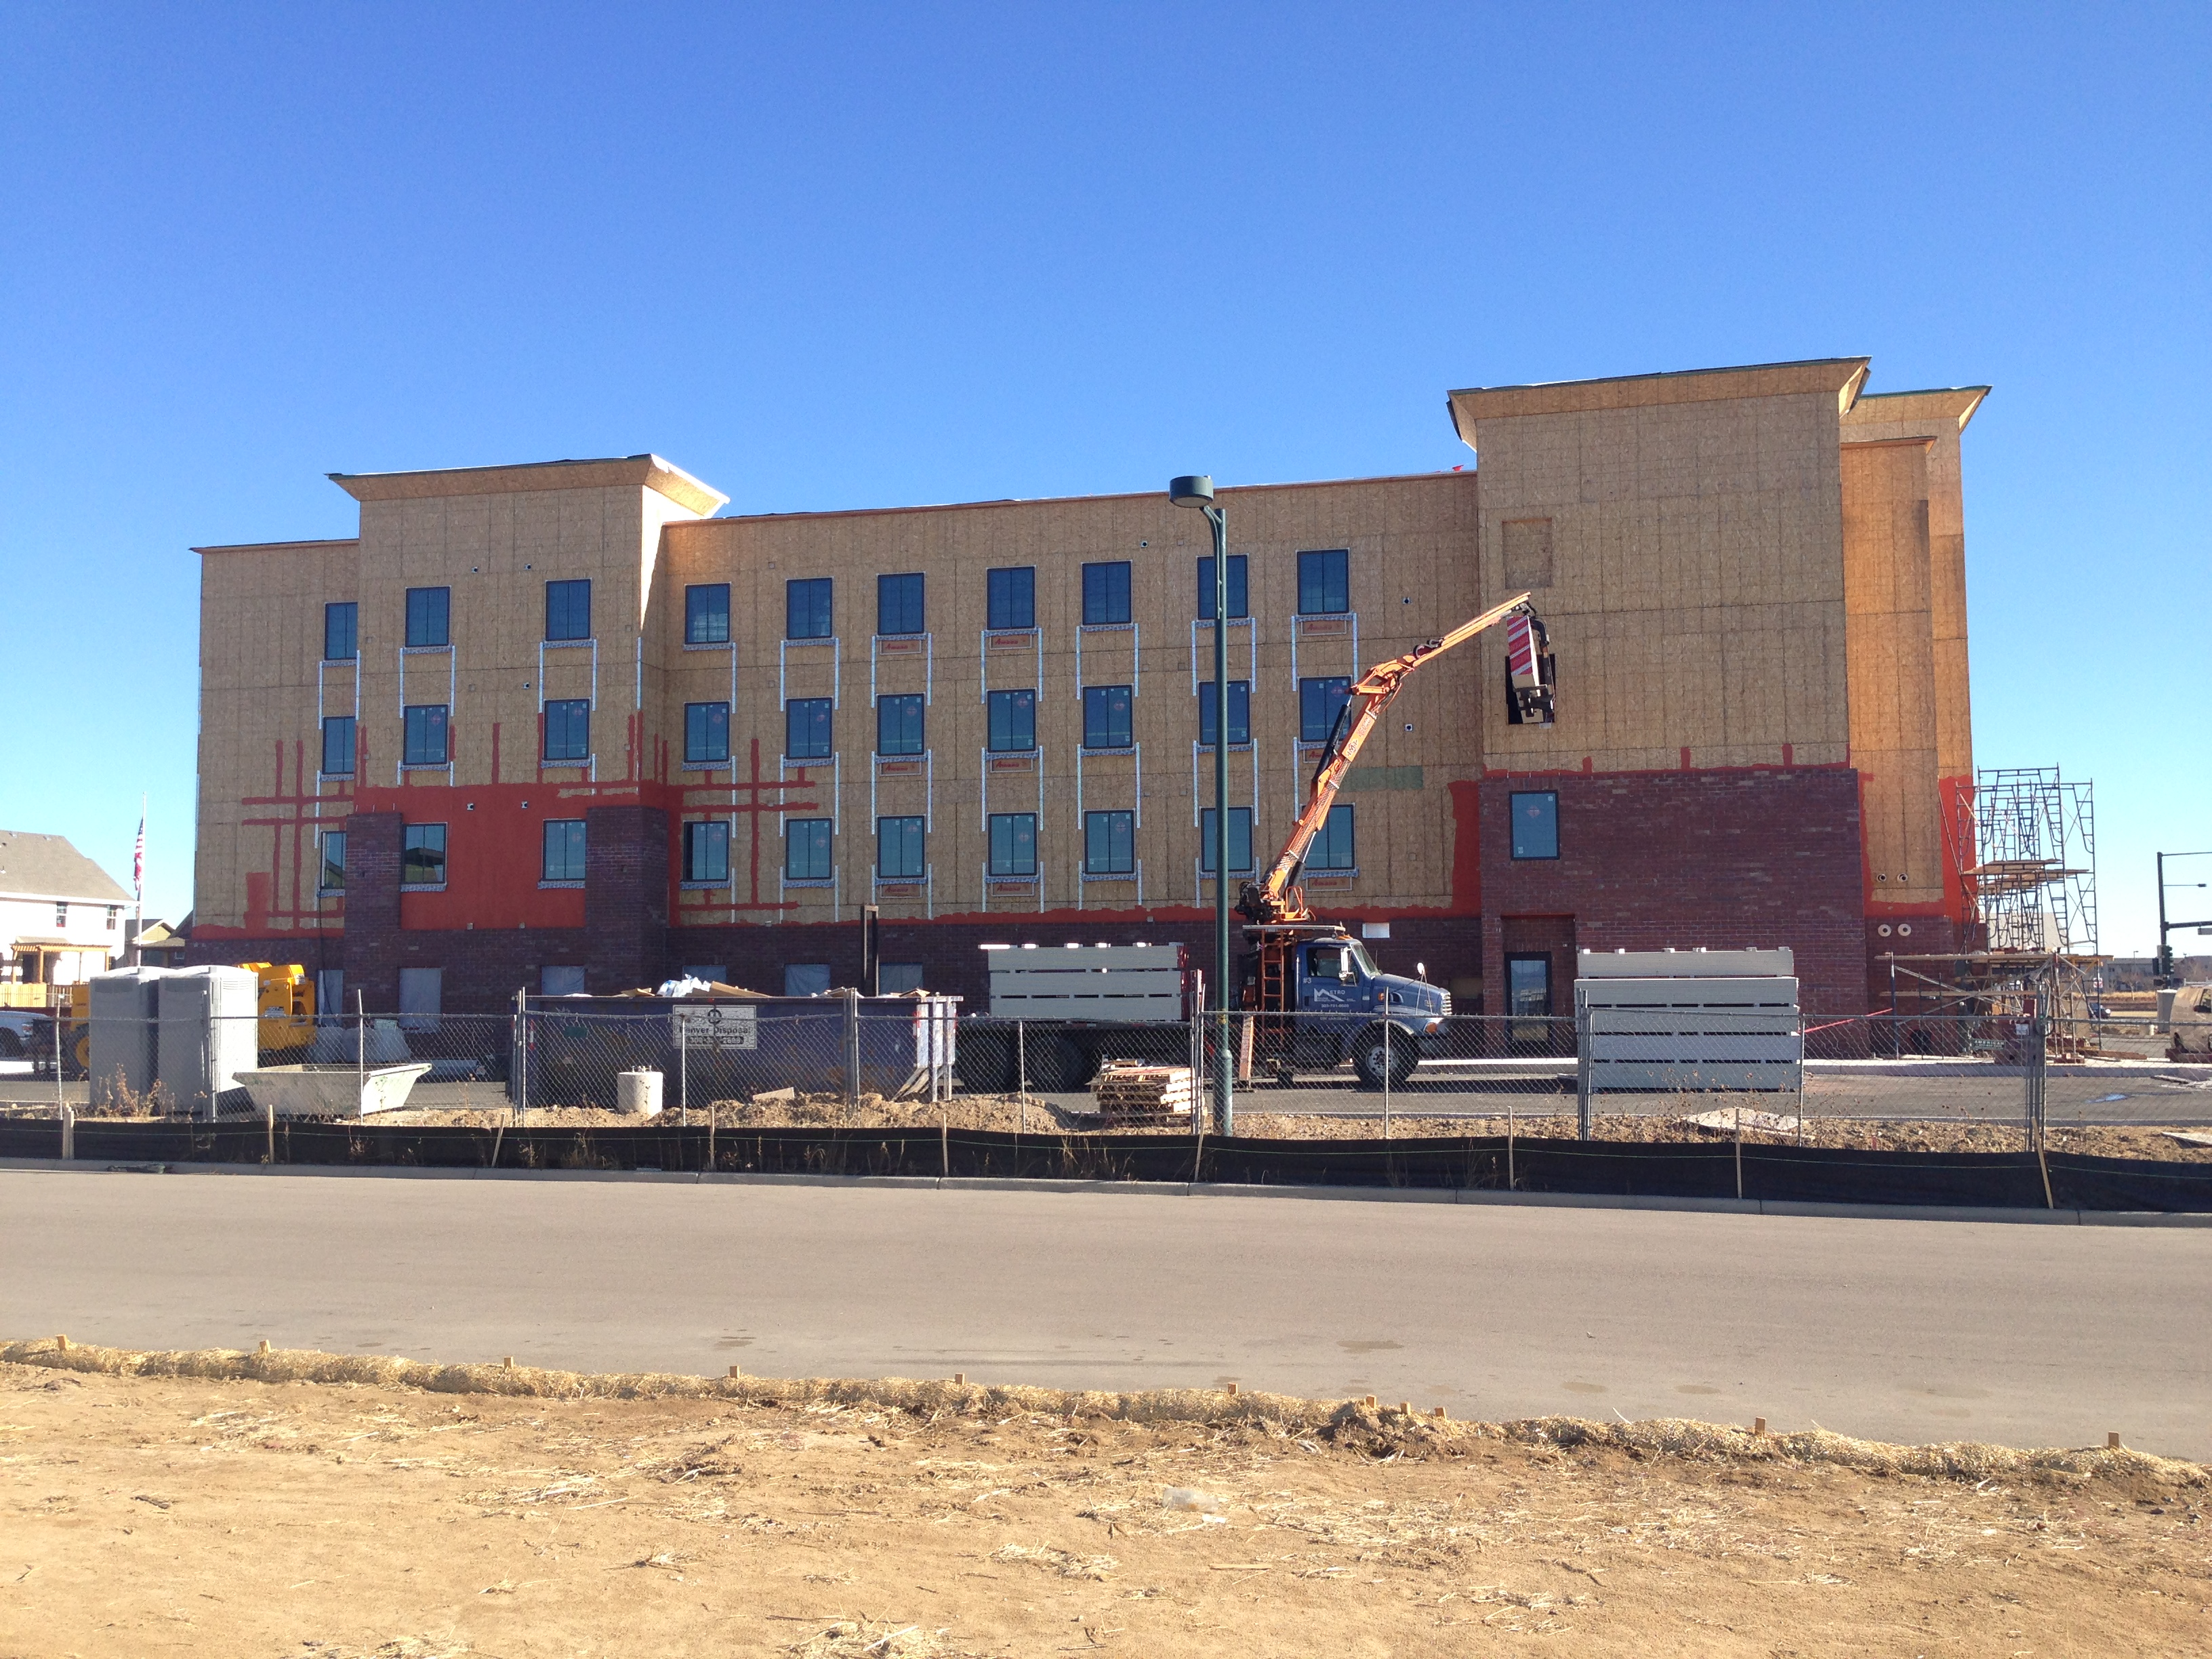 Staybridge Suites New Extended Stay Hotel Opening Spring 2017 In Stapleton